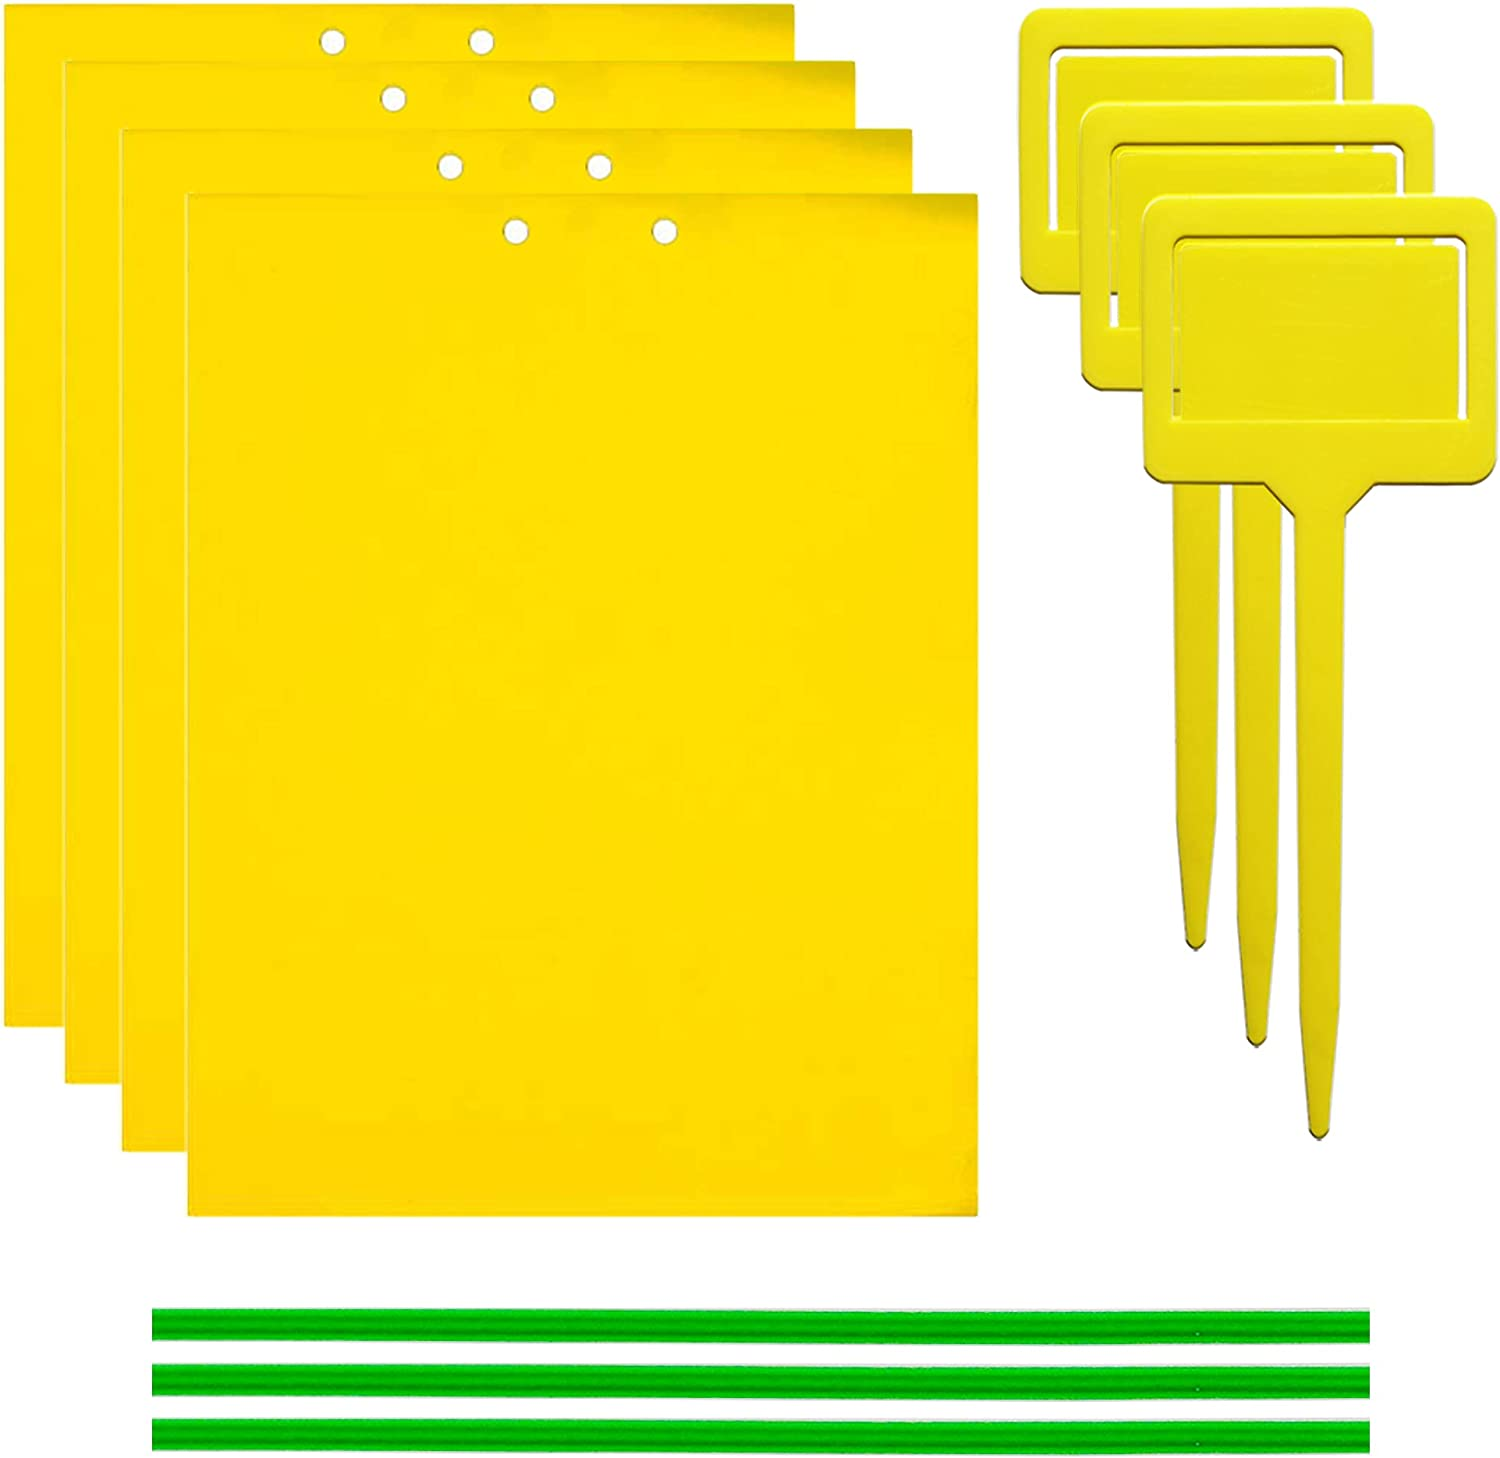 50 Sheets Yellow Sticky Traps, Fruit Fly Traps, for Indoor and Outdoor, Include Twist Ties and Plastic Holders